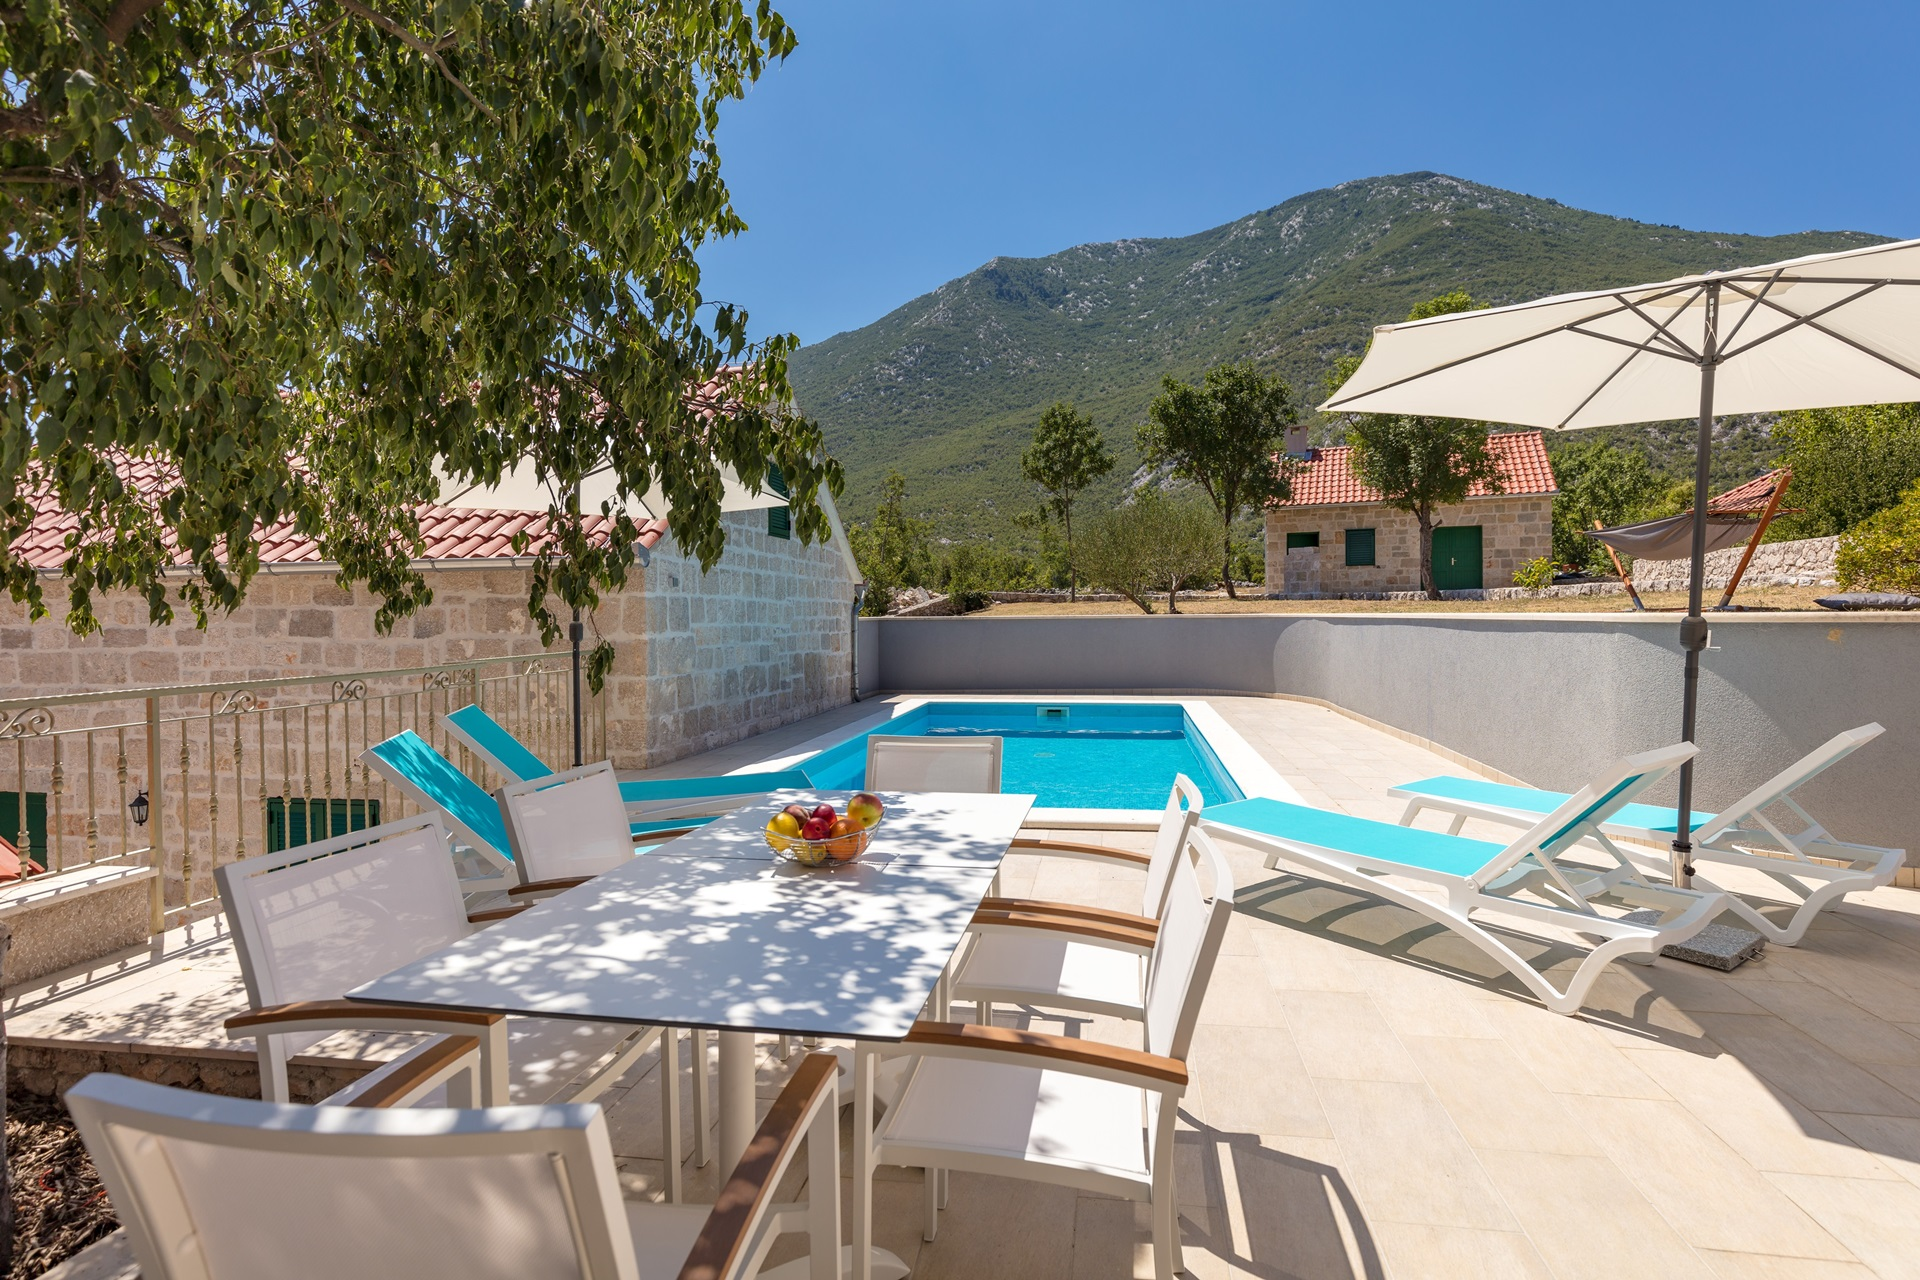 Outdoor dining area overlooking on the swimming pool and sunbeds with the parasols